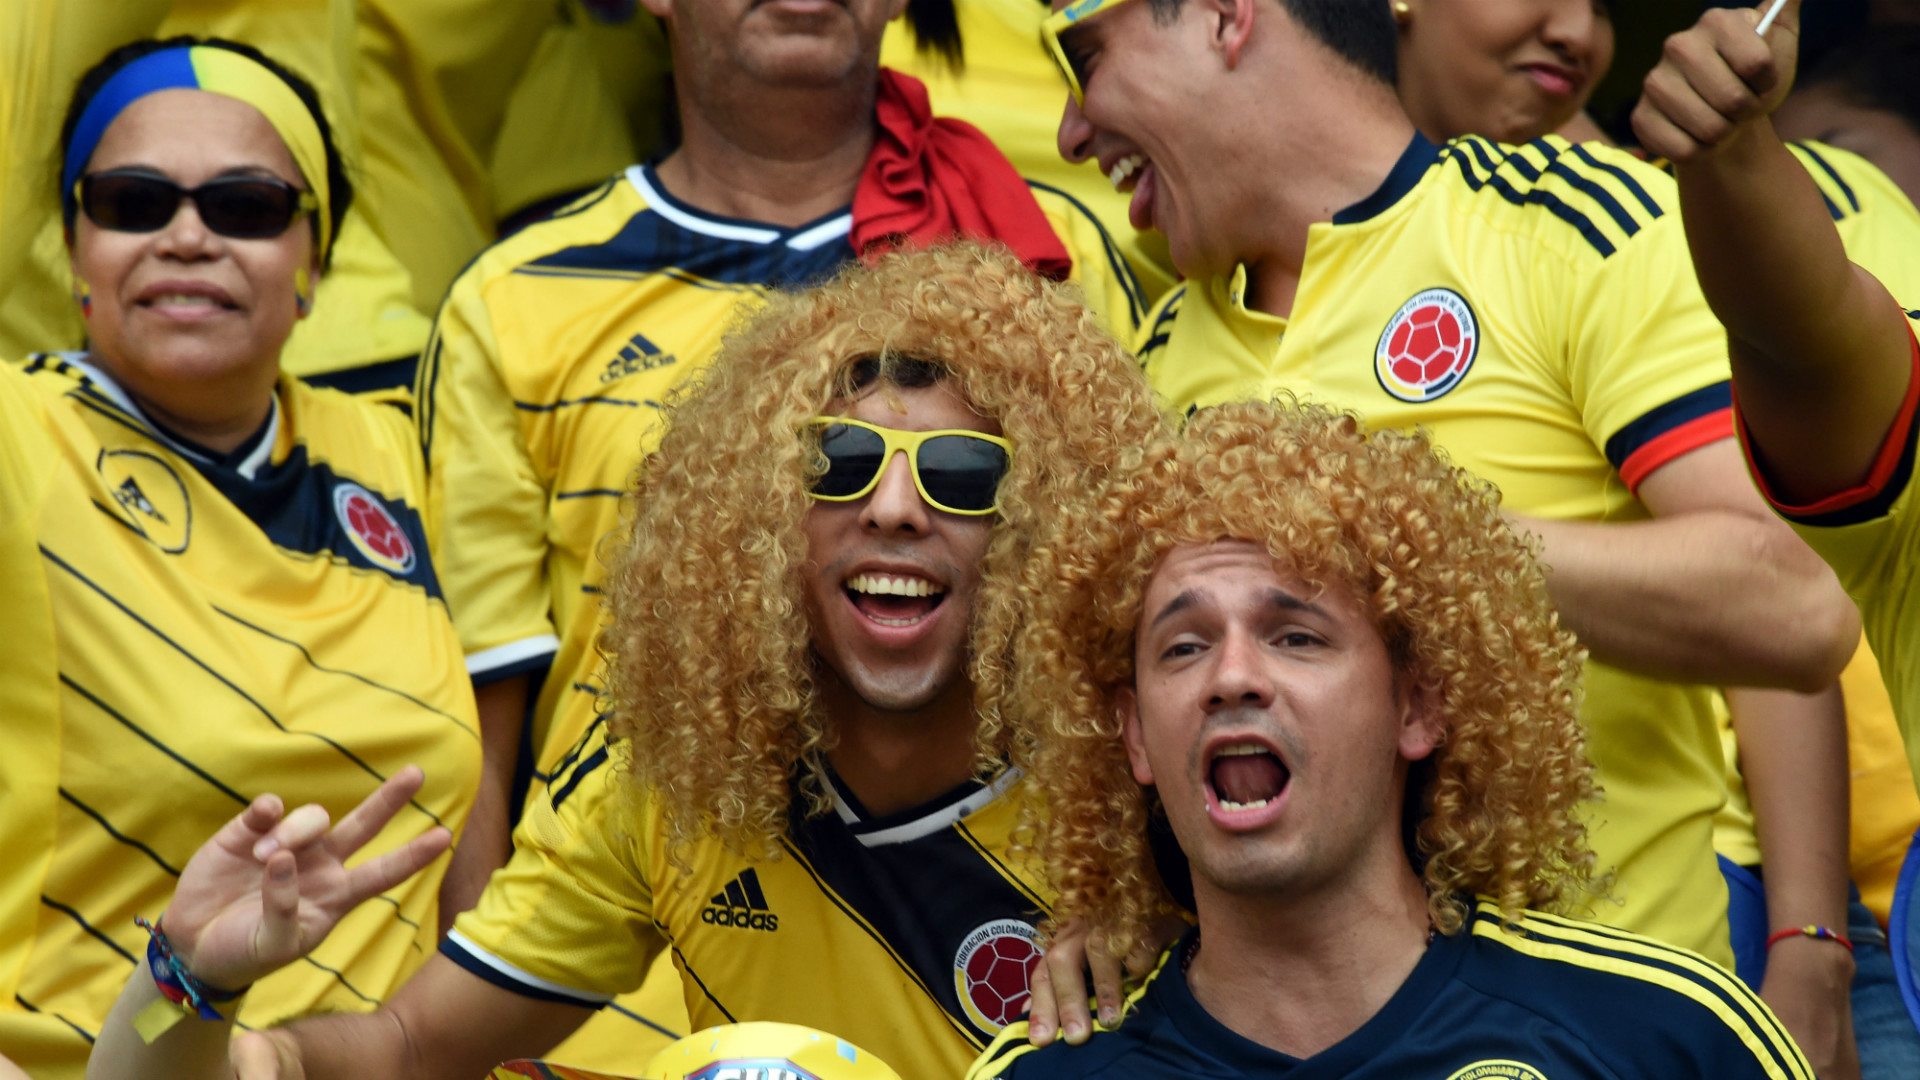 Colombia Argentina Fans Preview Qualifier World Cup 2018 17112015